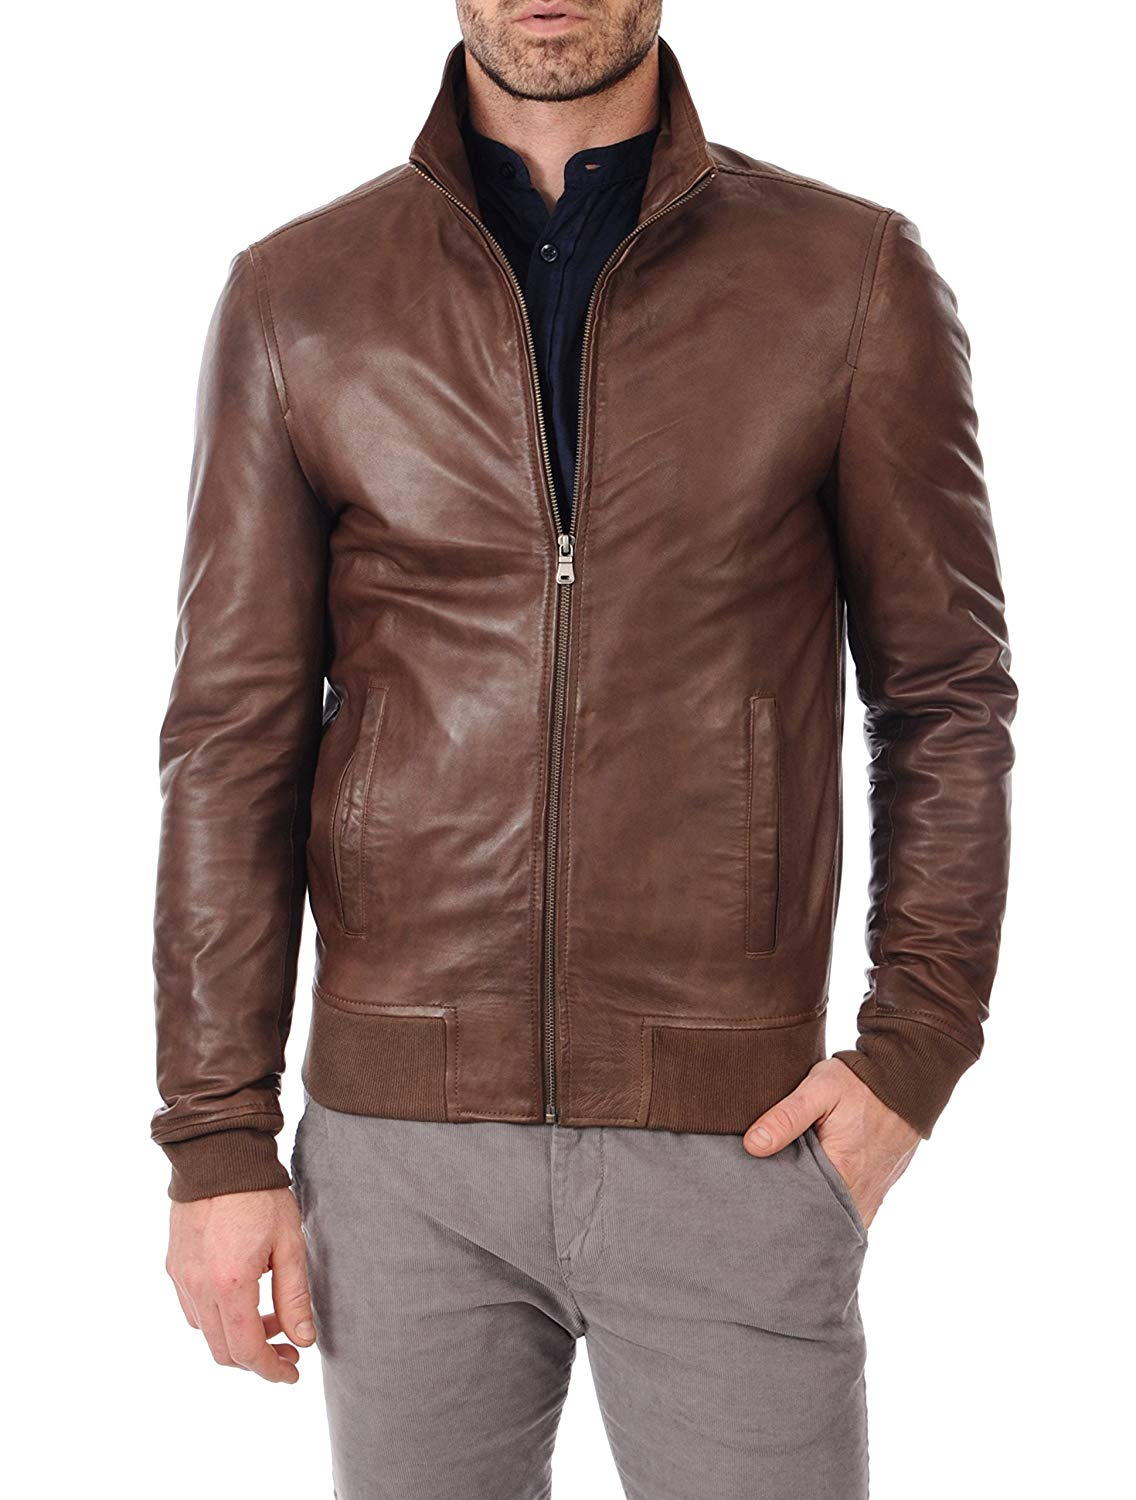 c61e1bd37a13f Get Quotations · Mens Leather Jackets Motorcycle Biker Bomber Brown Real  Leather Jackets Men